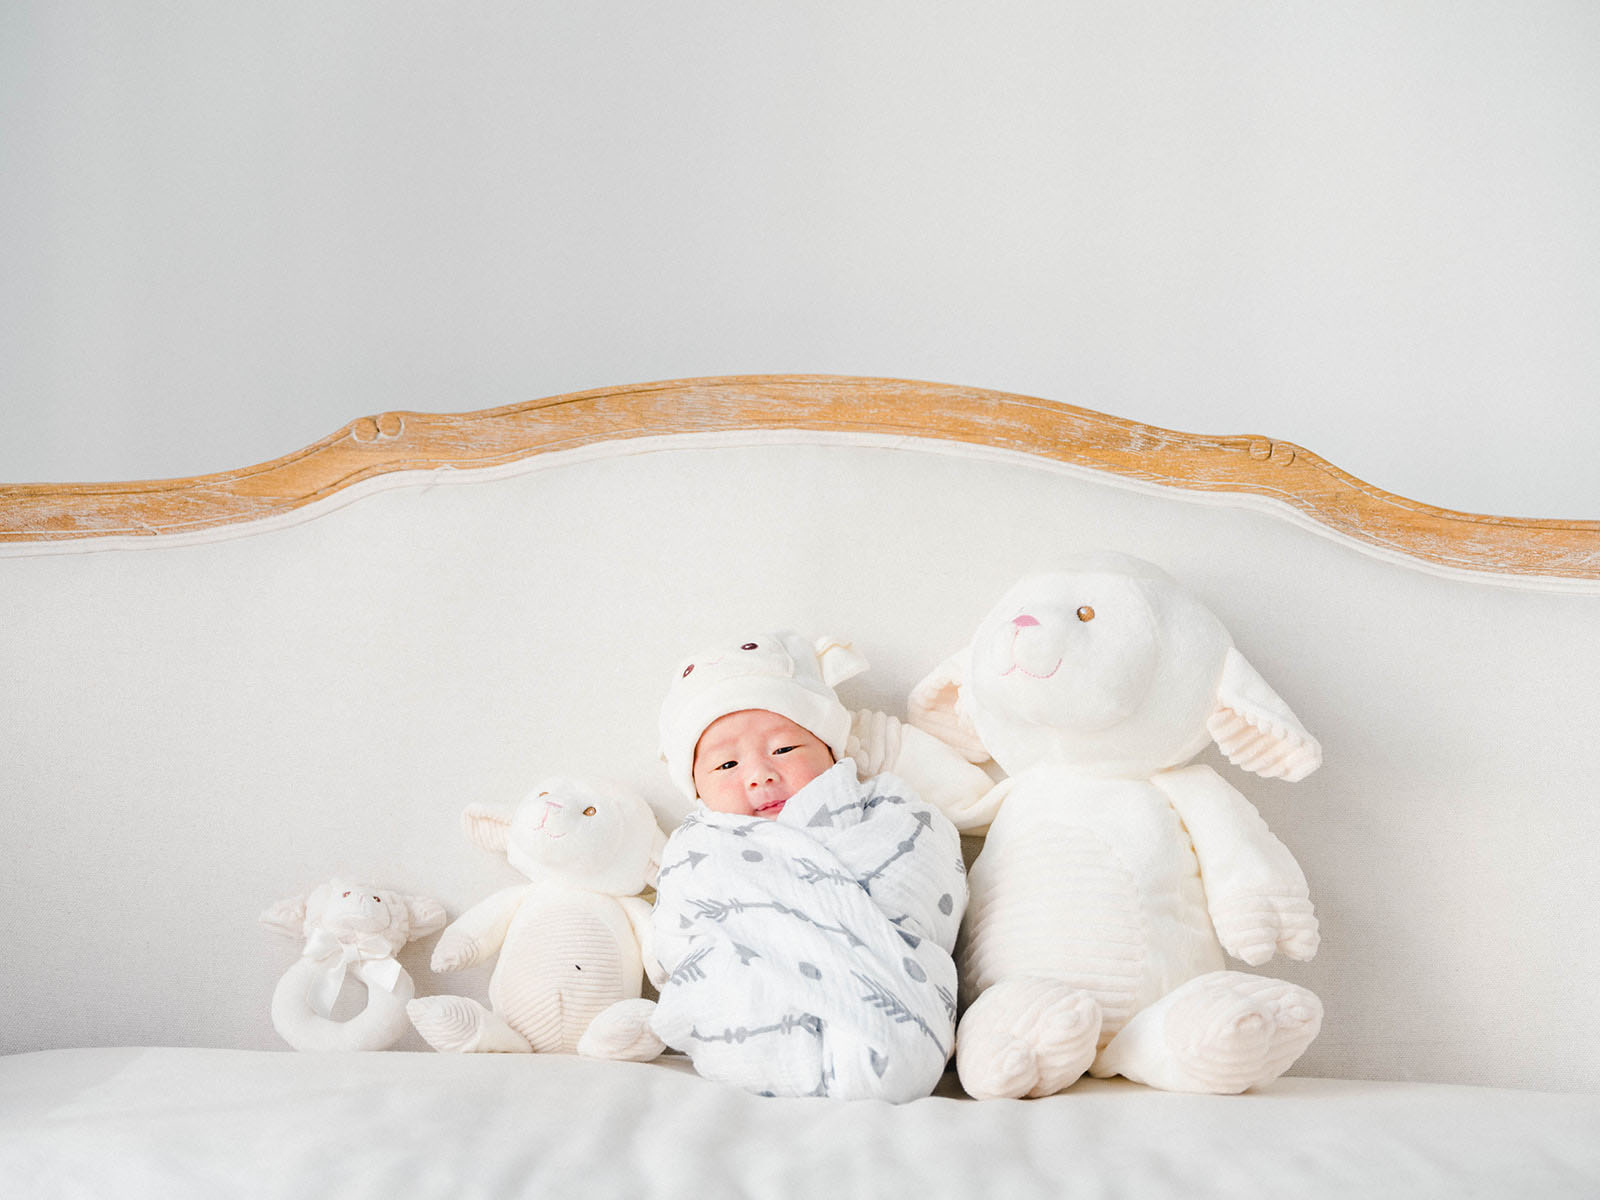 Baby on a bed with stuffies taken with Fujinon GF45-100mm f/4 R LM OIS WR lens